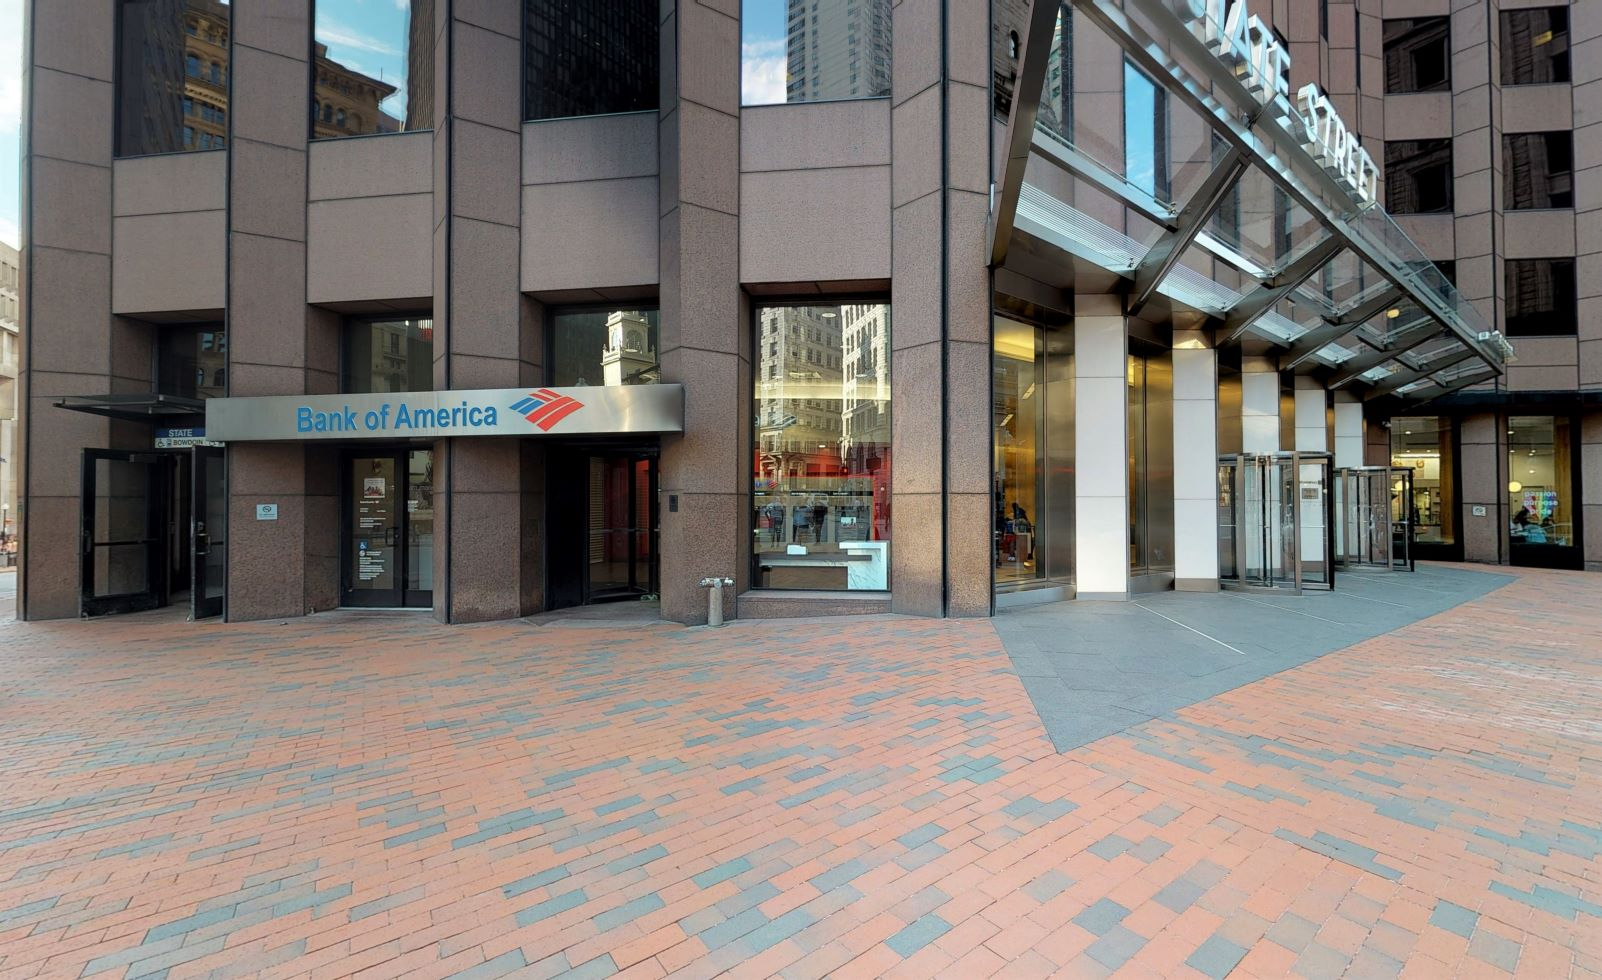 Bank of America ATM & Financial Center Near You | 60 State St, Boston, MA 02109